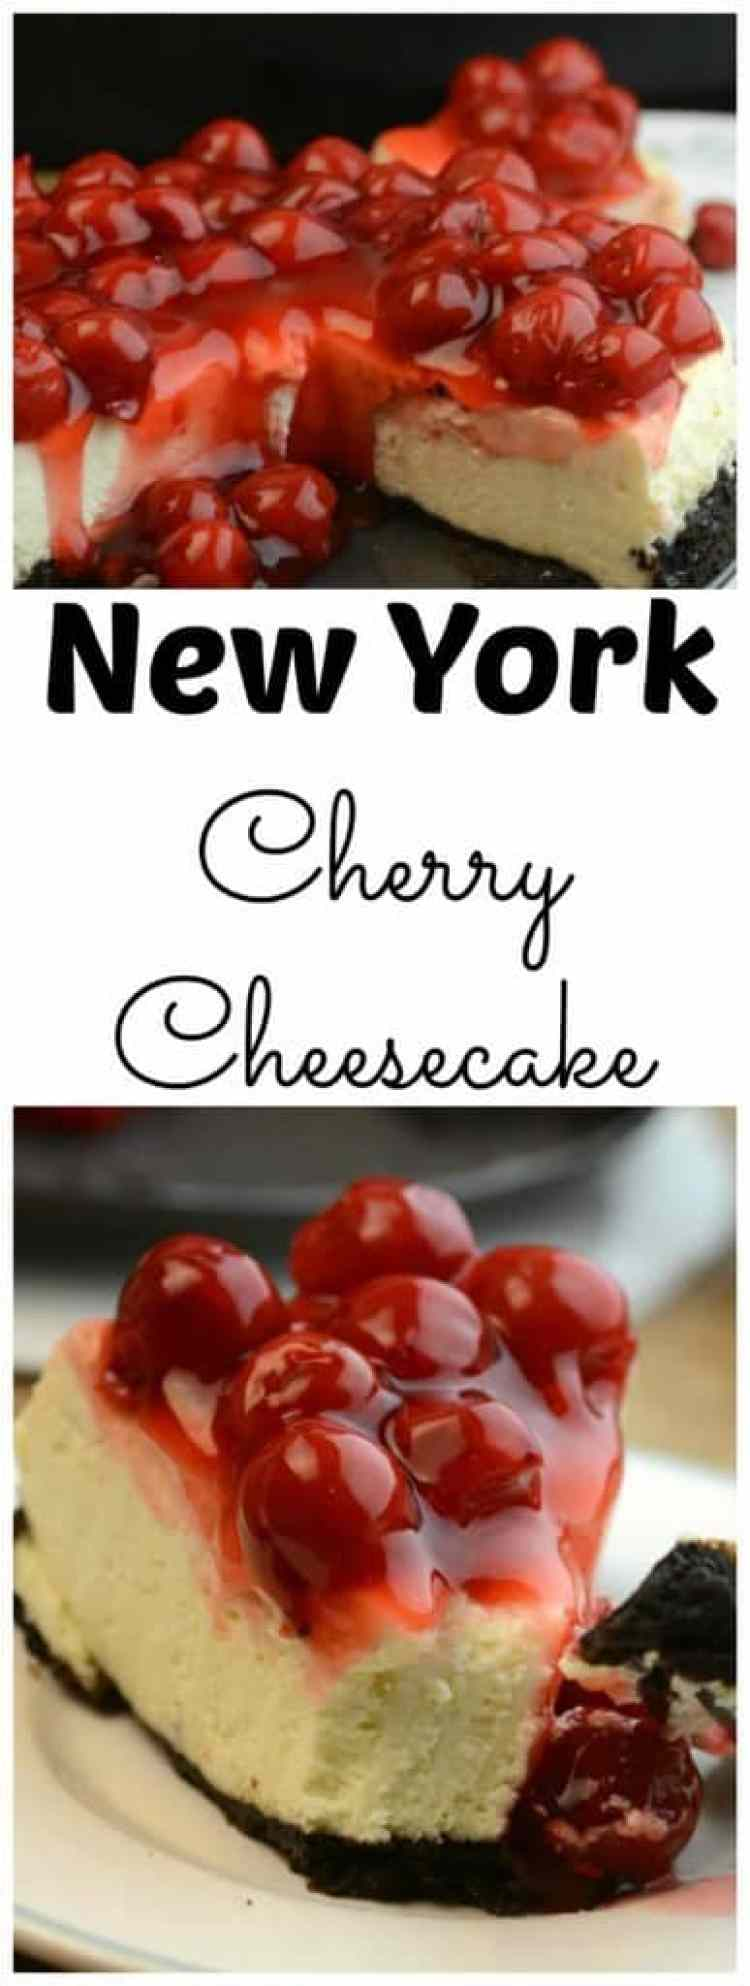 New York Cherry Cheesecake Recipe